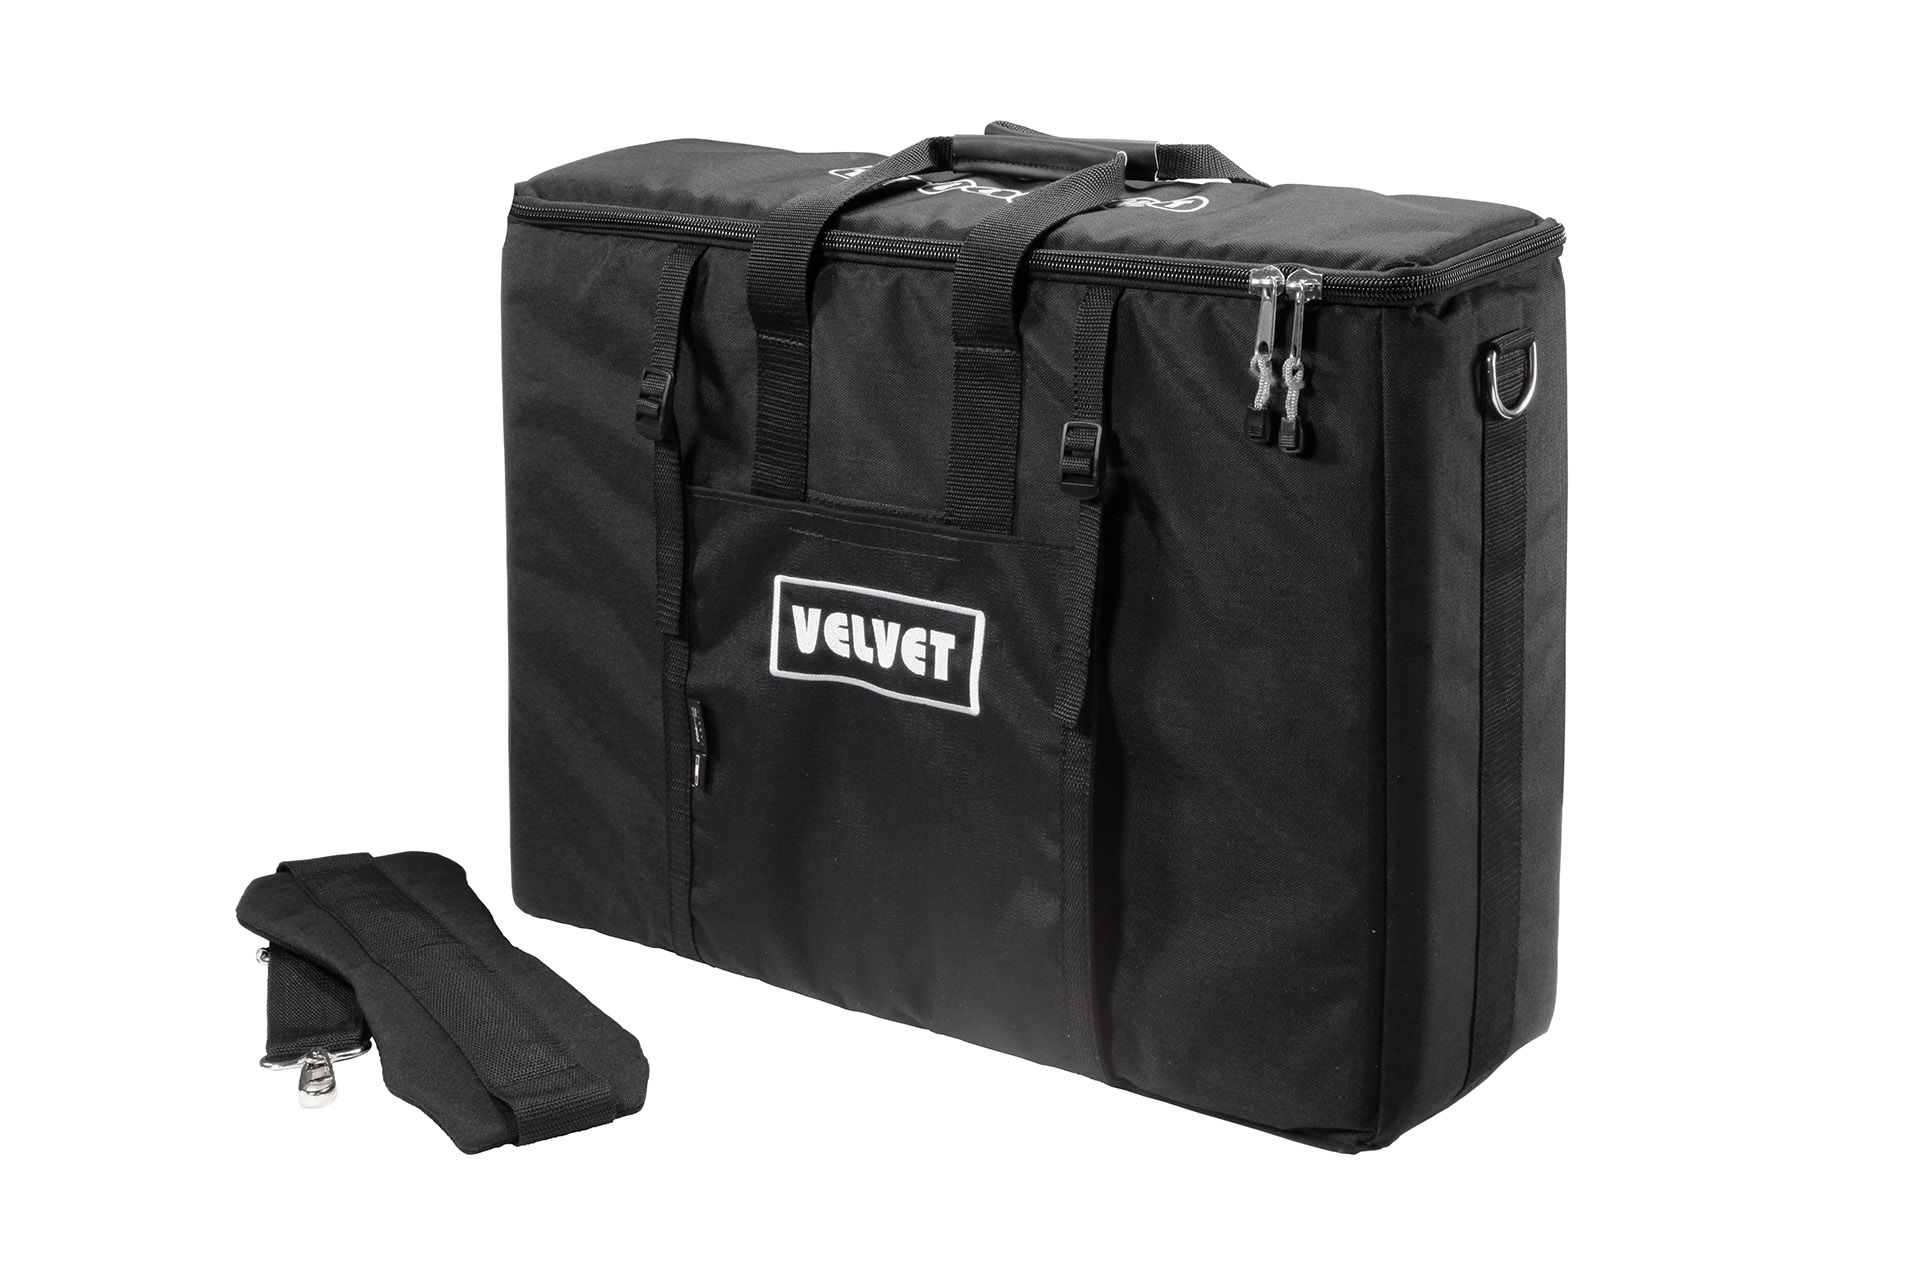 VELVET 1 cordura soft bag